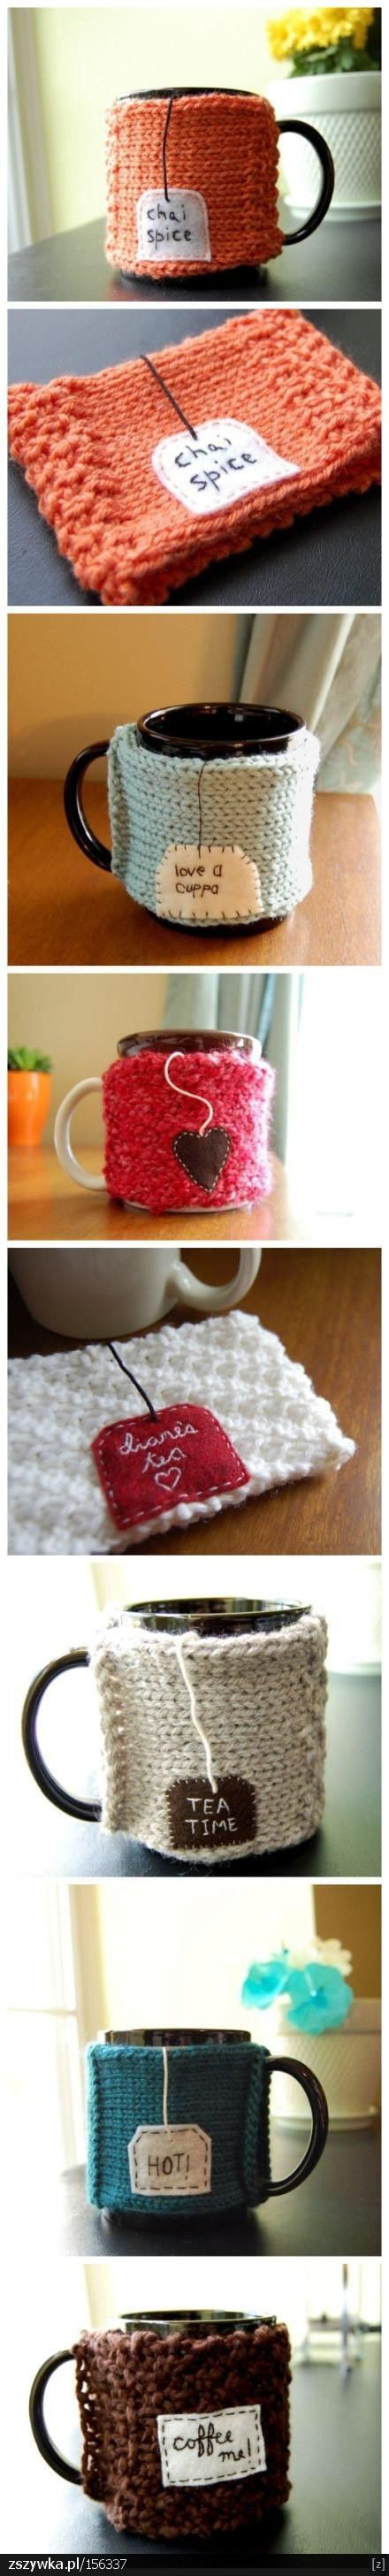 Ideas : Cute! I love these!